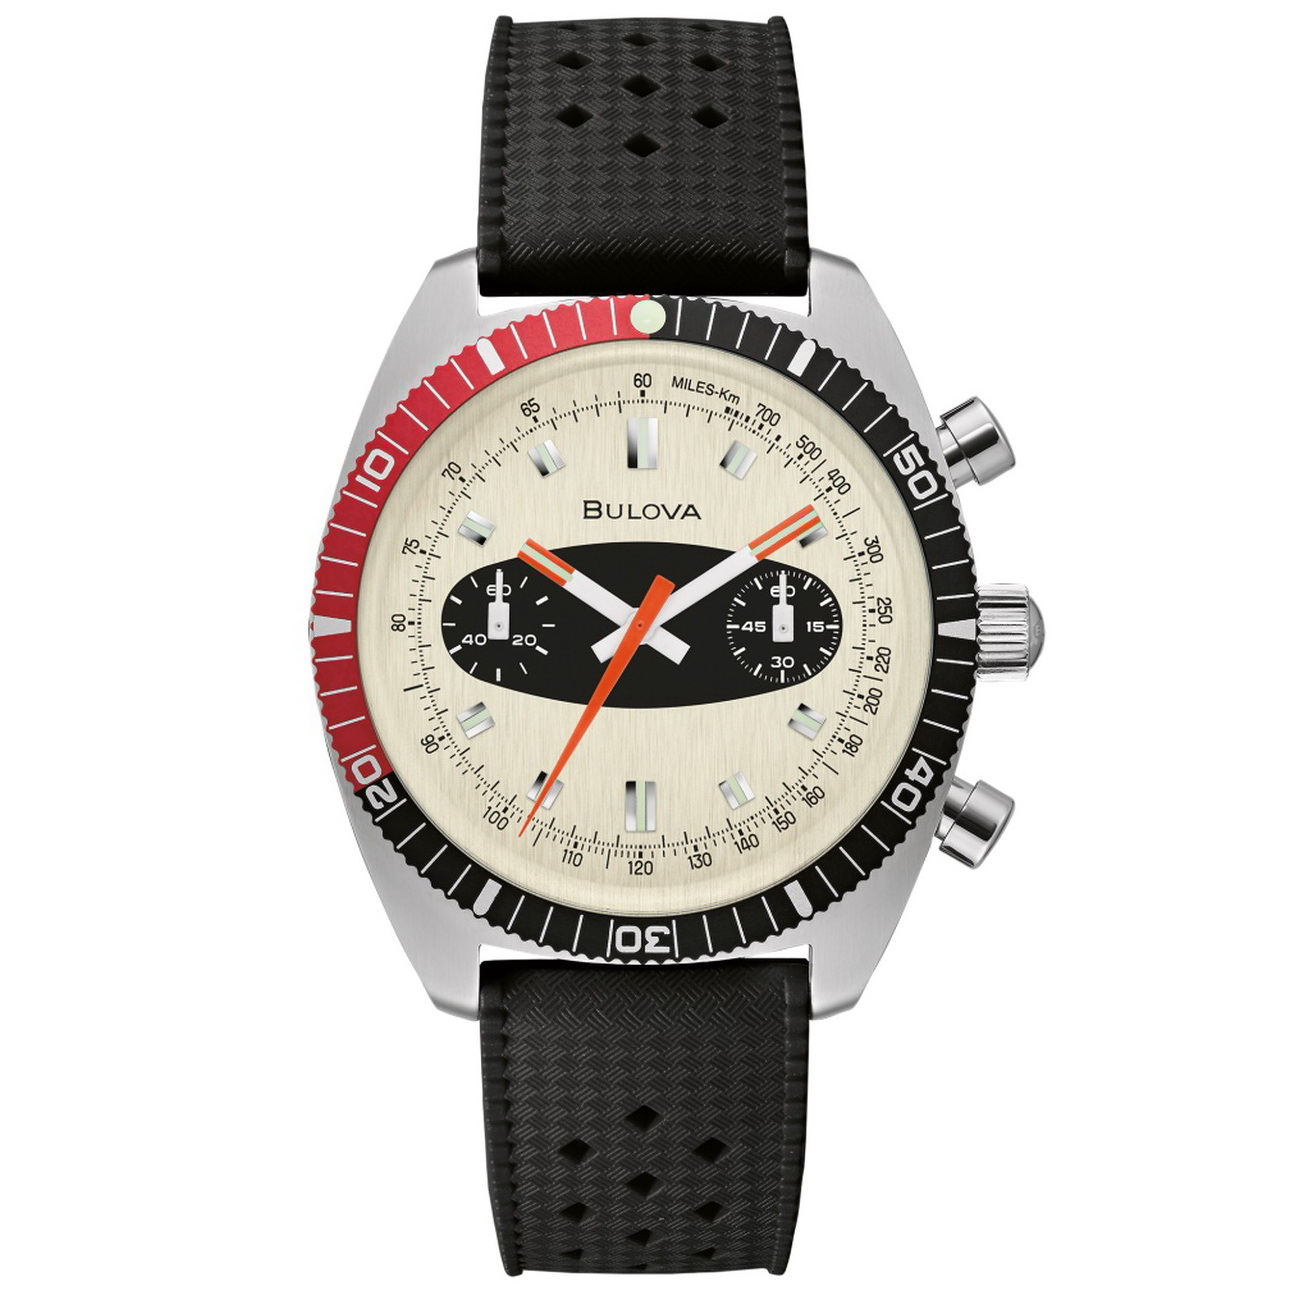 "Bulova's new Chronograph A ""Surfboards"" BULOVA+Chronograph+A+SURFBOARD+Limited+Edition+03"